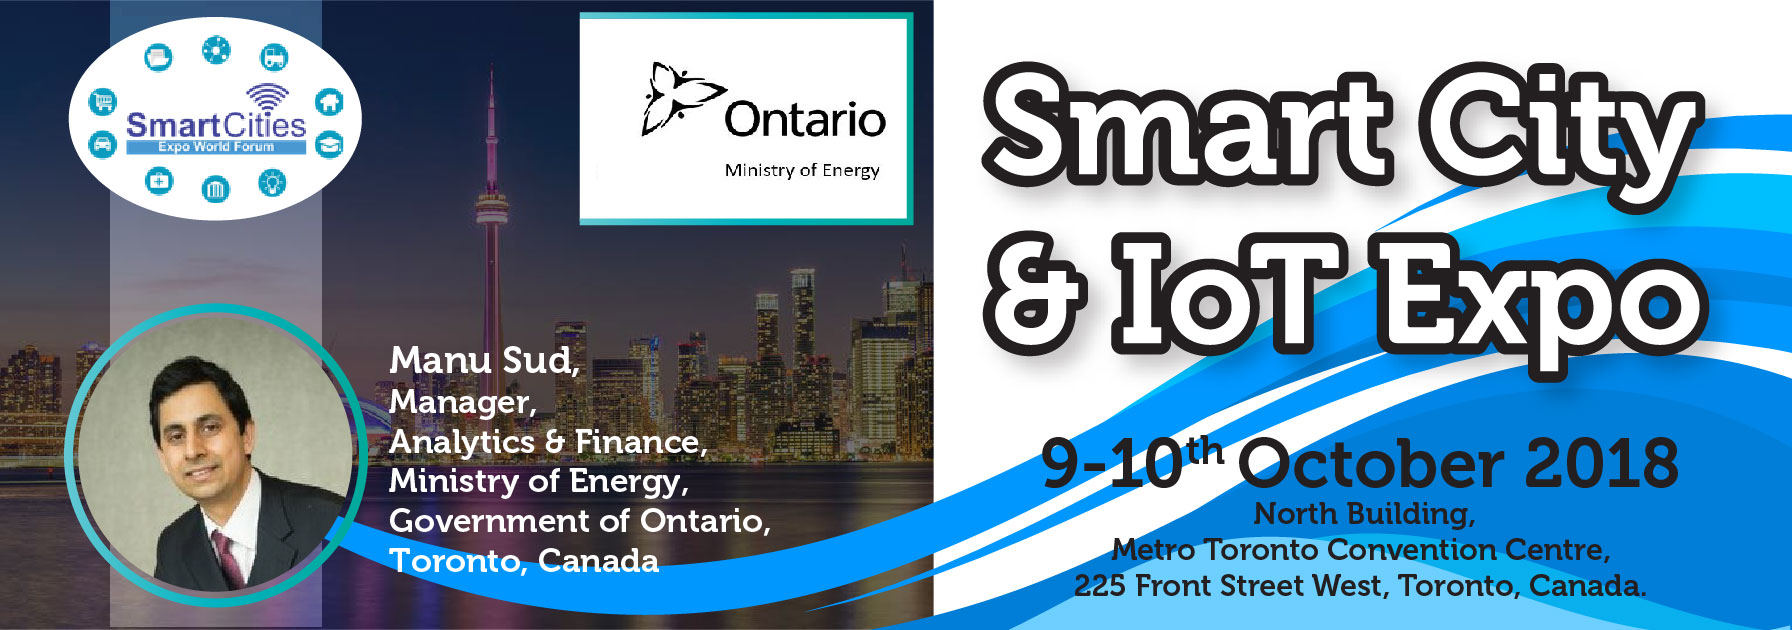 Smart Cities Expo World Forum is pleased to announce the presence of Manu Sud, Manager, Analytics and Finance. Ministry of Energy, Canada at Smart City & IoT Expo 9-10 Oct. 2018, Metro Toronto Convention Center, Toronto, Canada. Register Now: www.SmartCitiesExpoWorldForum.ca